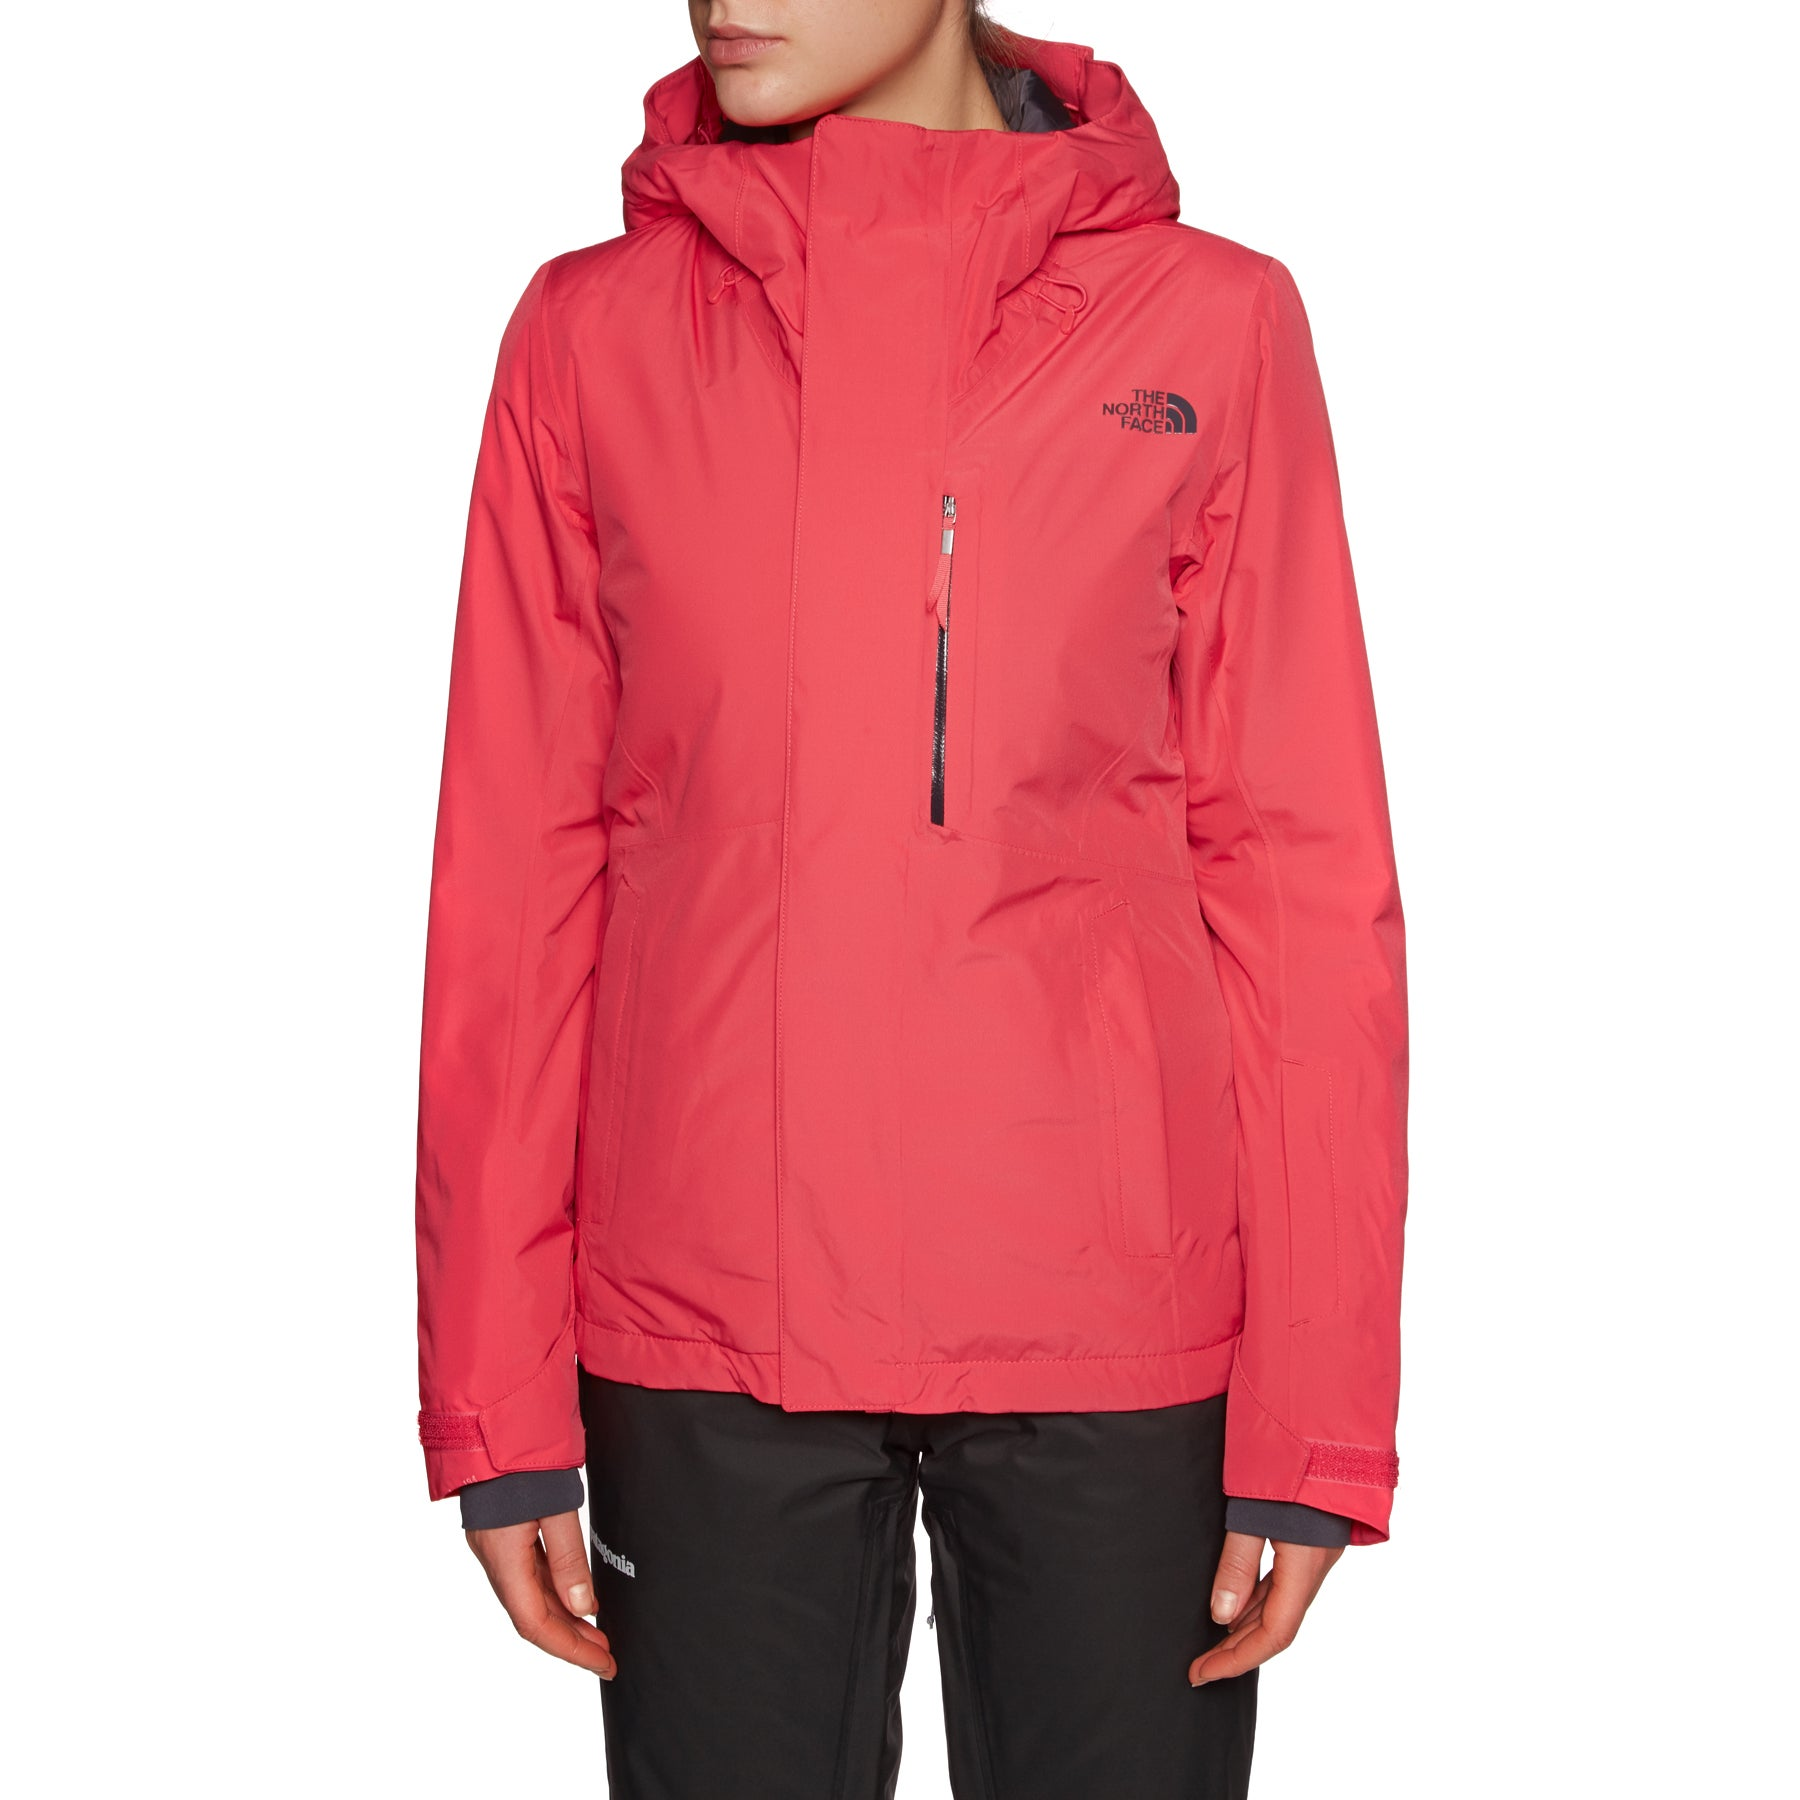 North Face Descendit Womens Jacket - Teaberry Pink